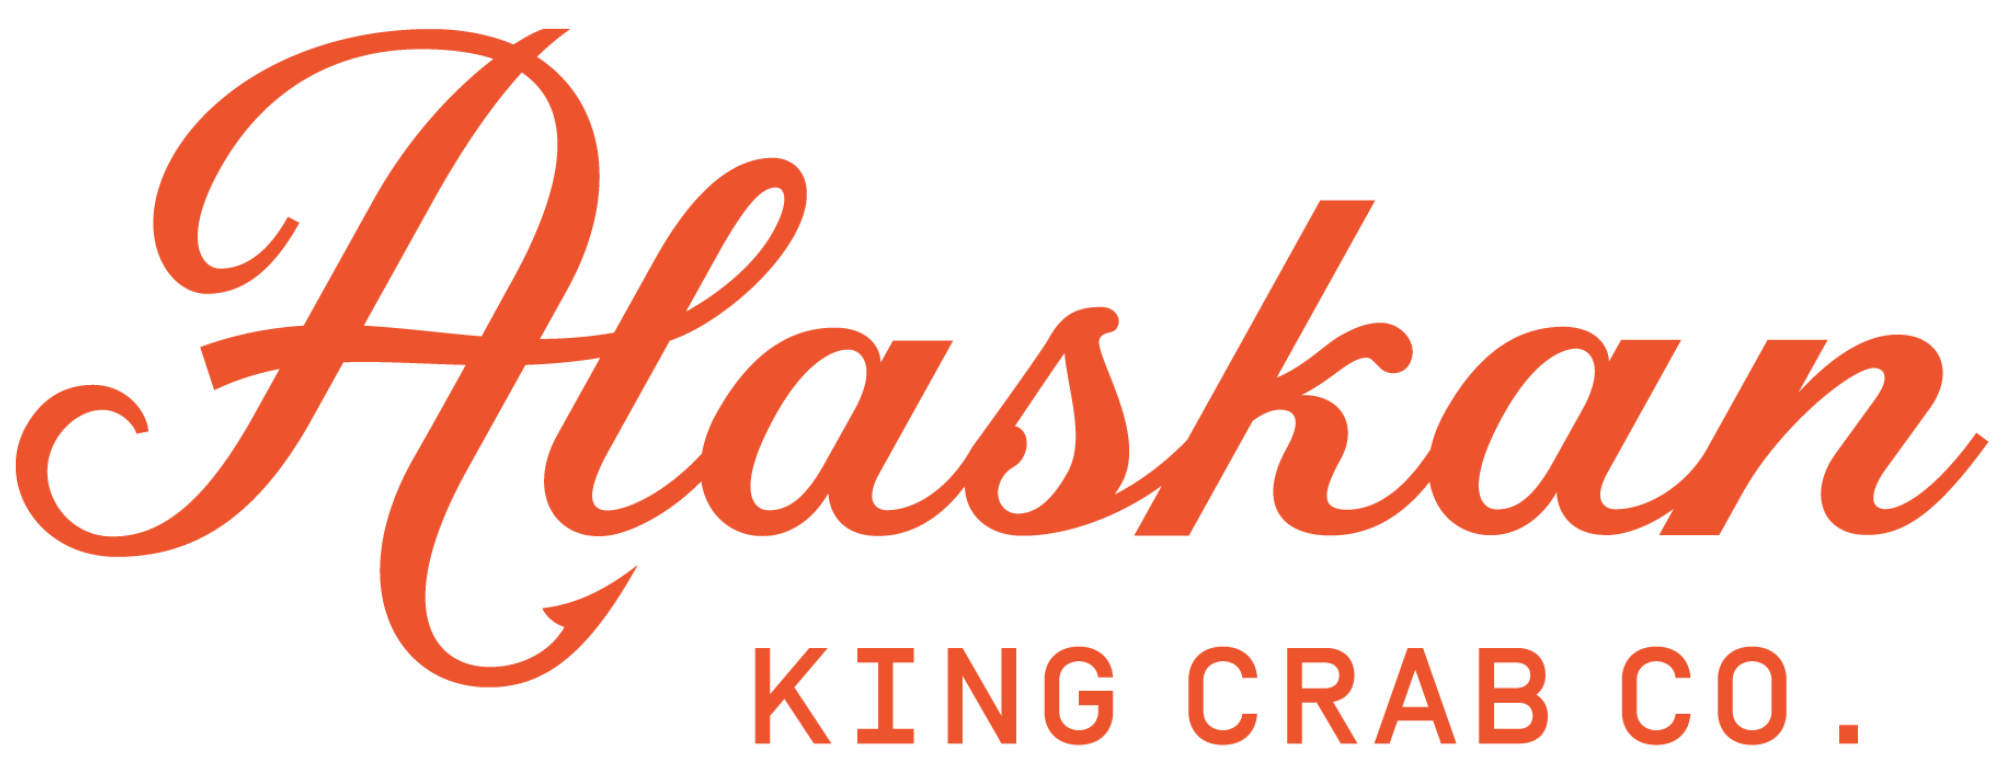 Alaskan King Crab Co.  Help Center home page